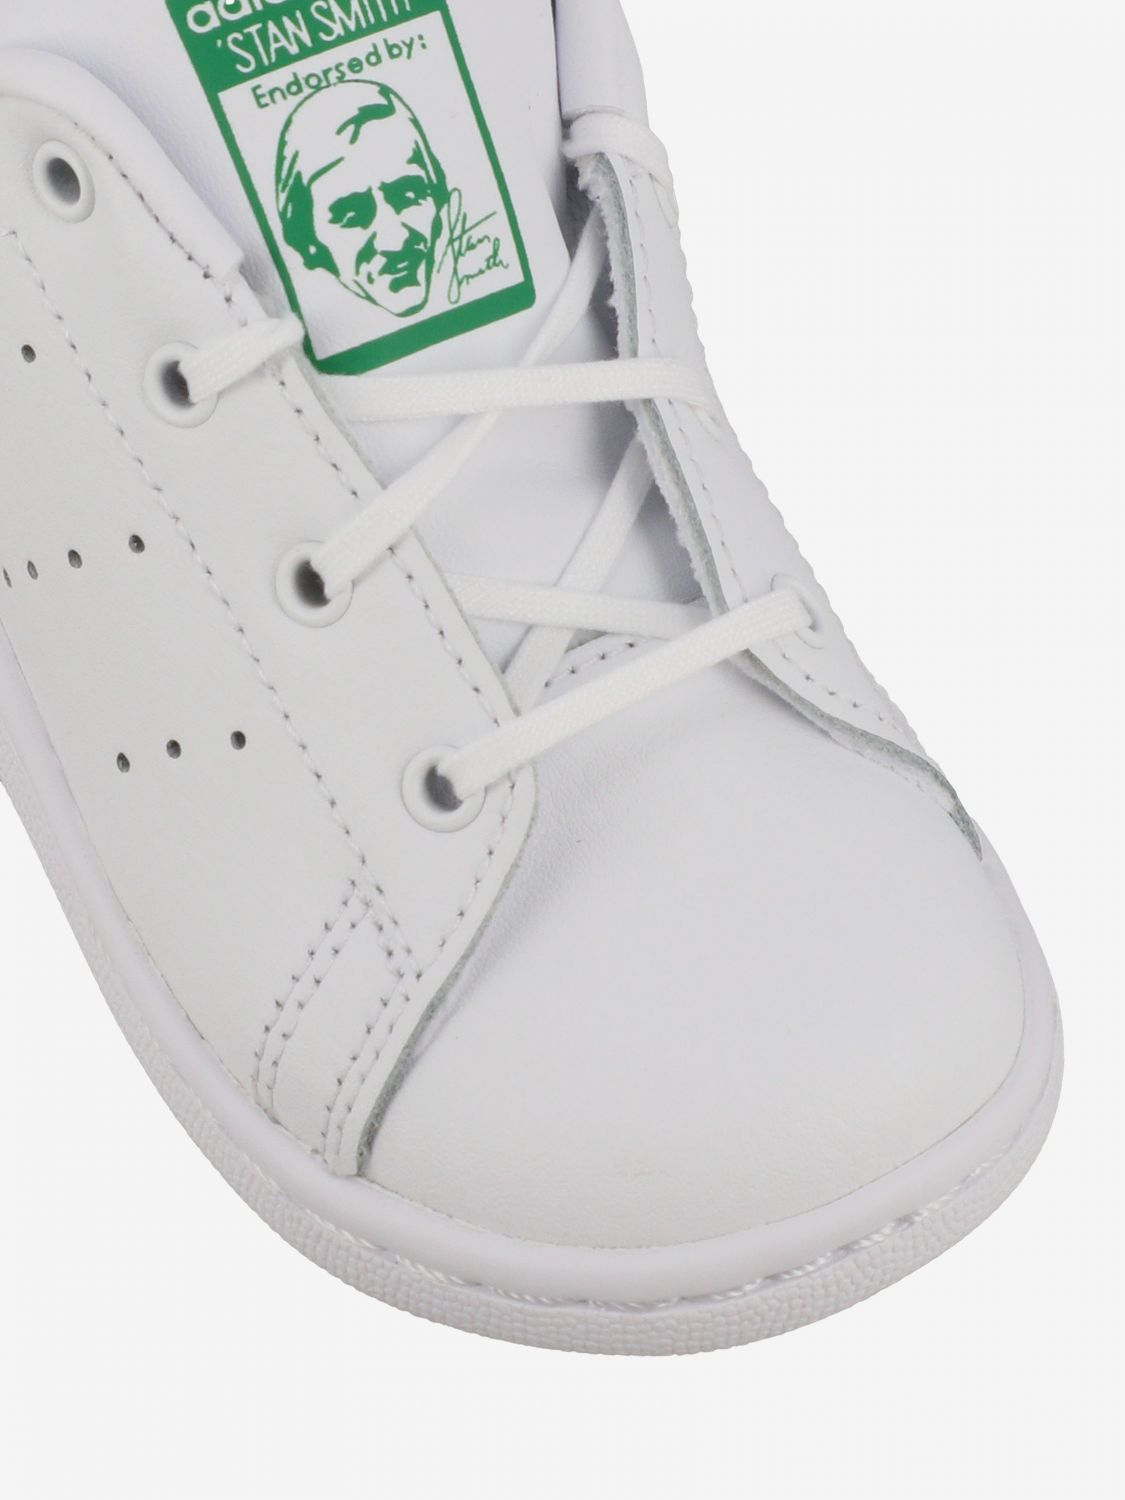 Shoes Adidas Originals: Stan smith Adidas Originals leather sneakers white 4